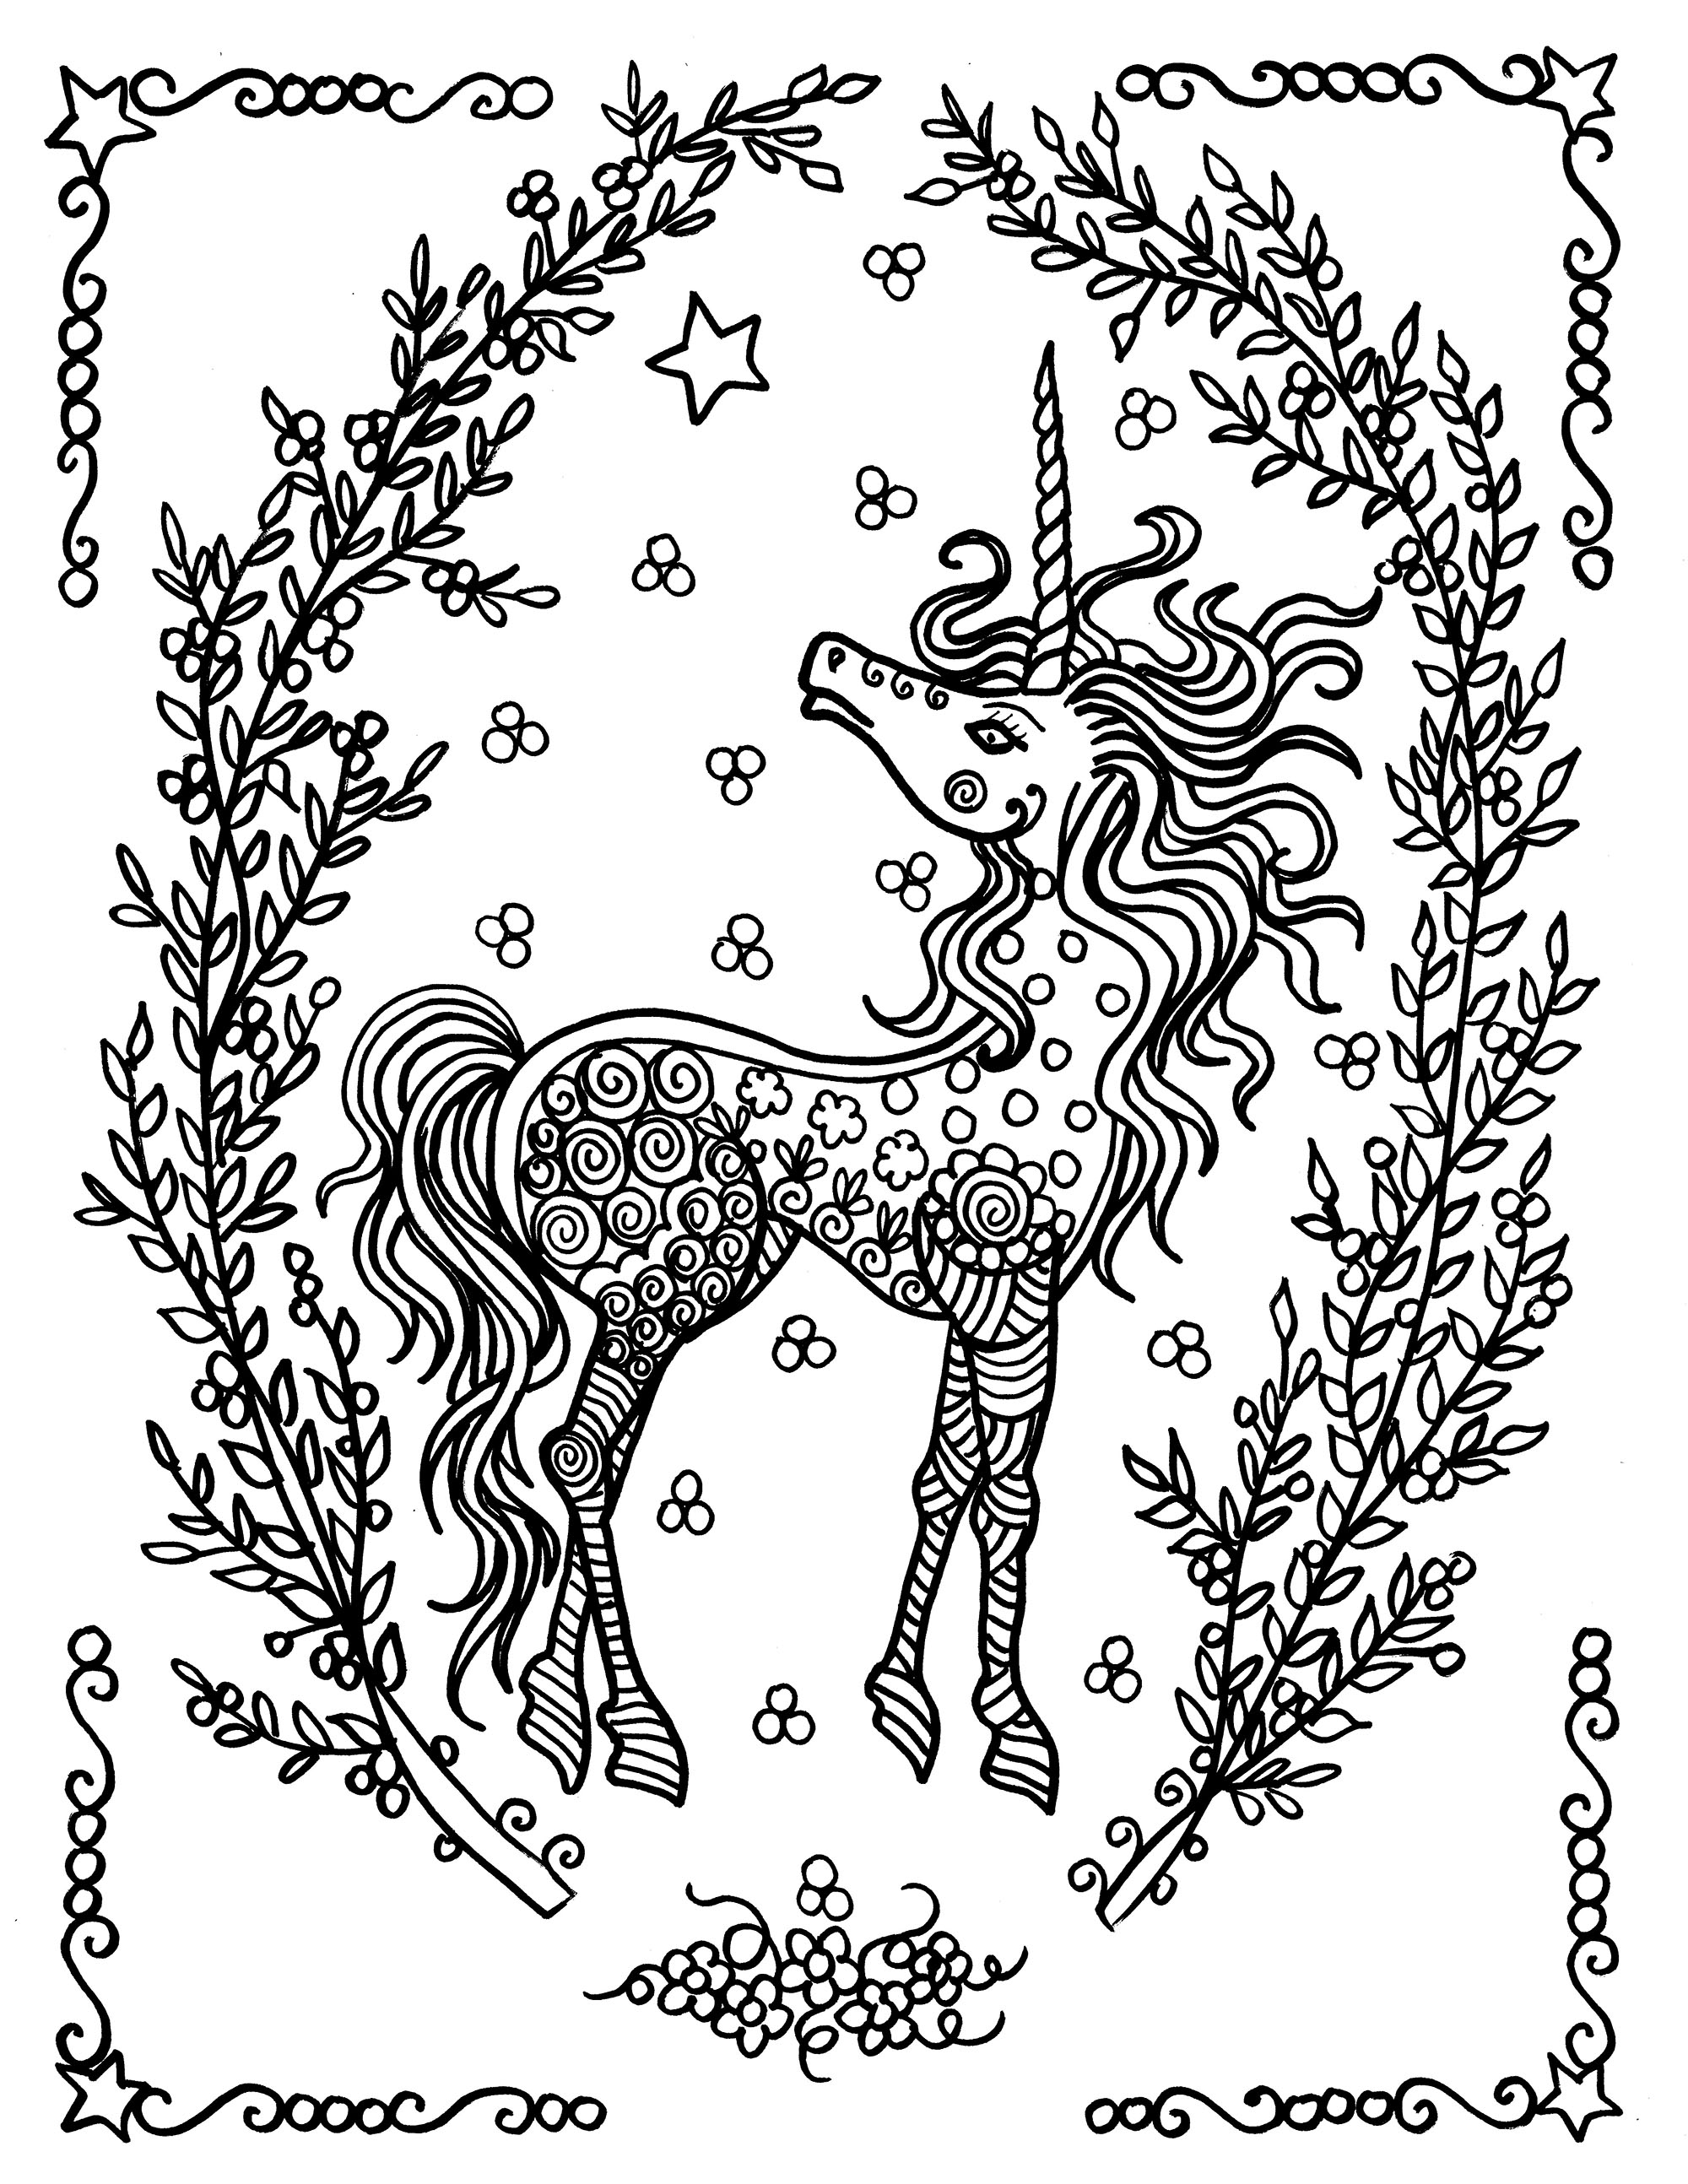 Coloring Pages For Adults Unicorns - Coloring page unicorn by deborah muller free to print